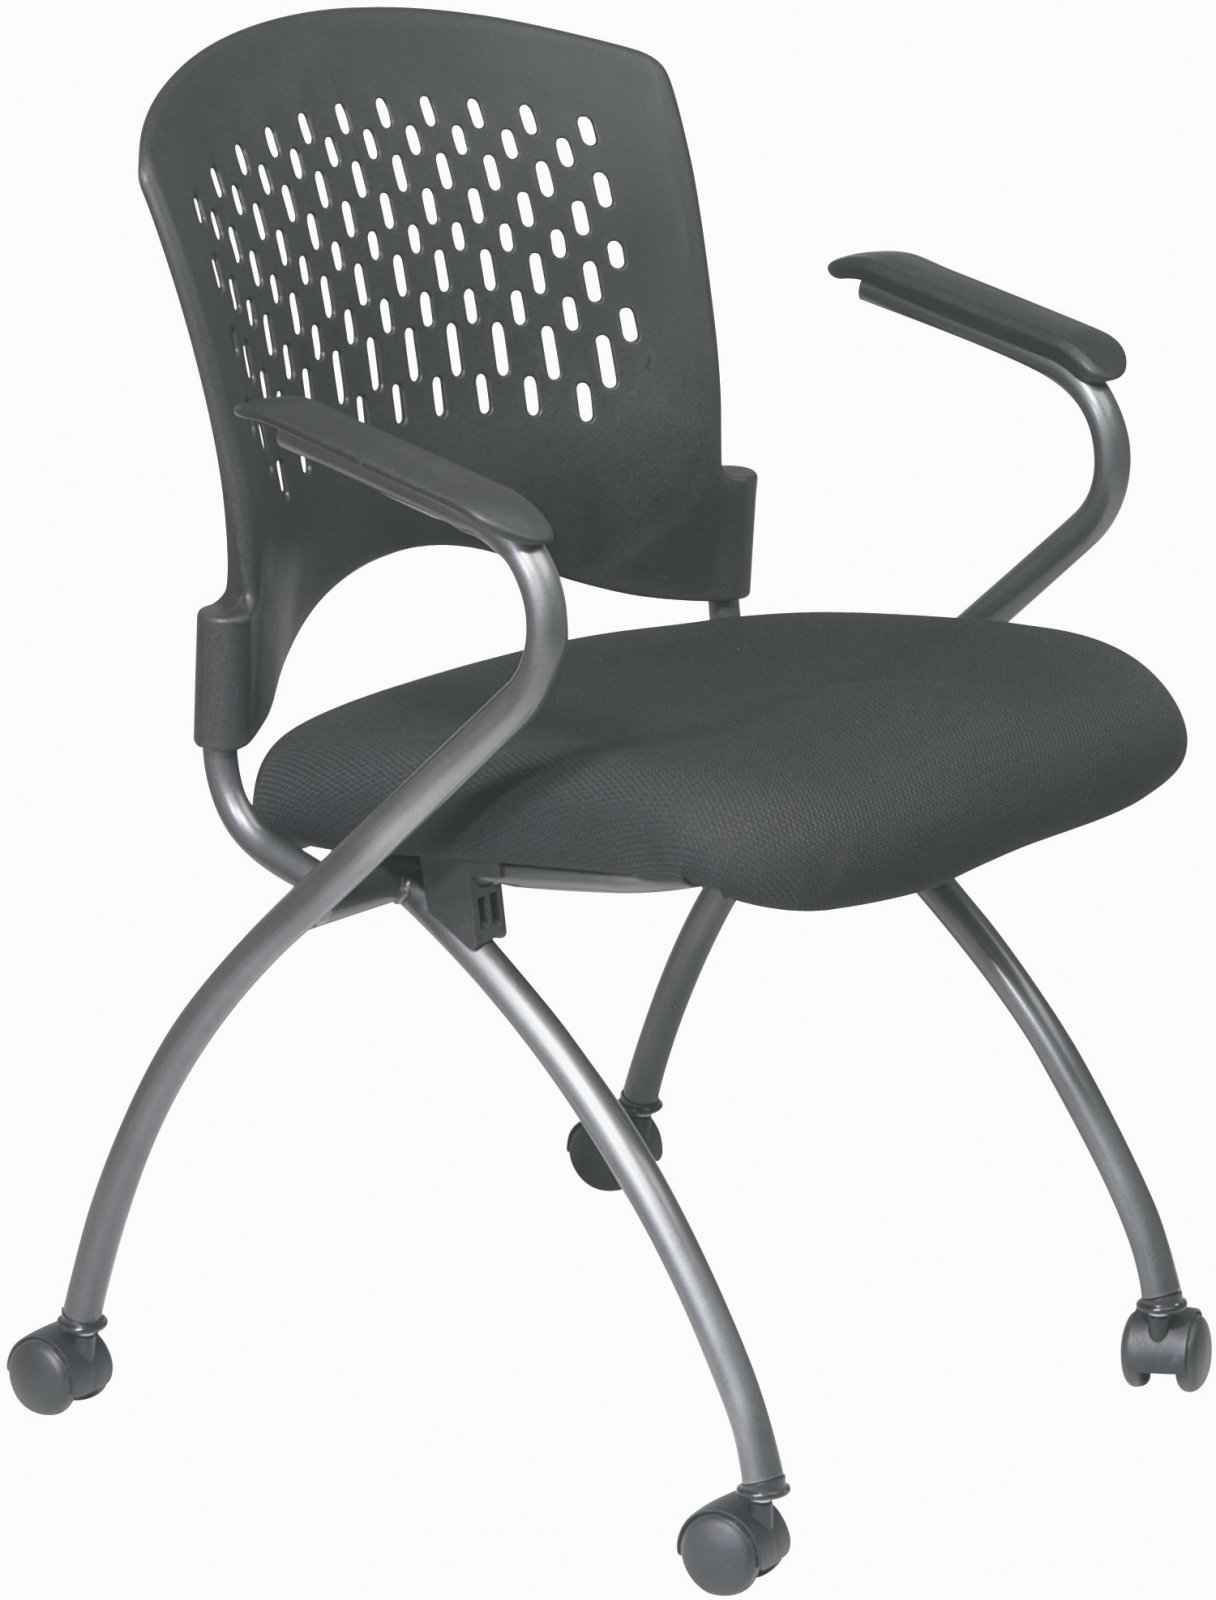 to reception chair task white size gray desk home knoll discount full without of cream where casters buy wheels spinning faux chairs hon best ergonomic seat office computer leather